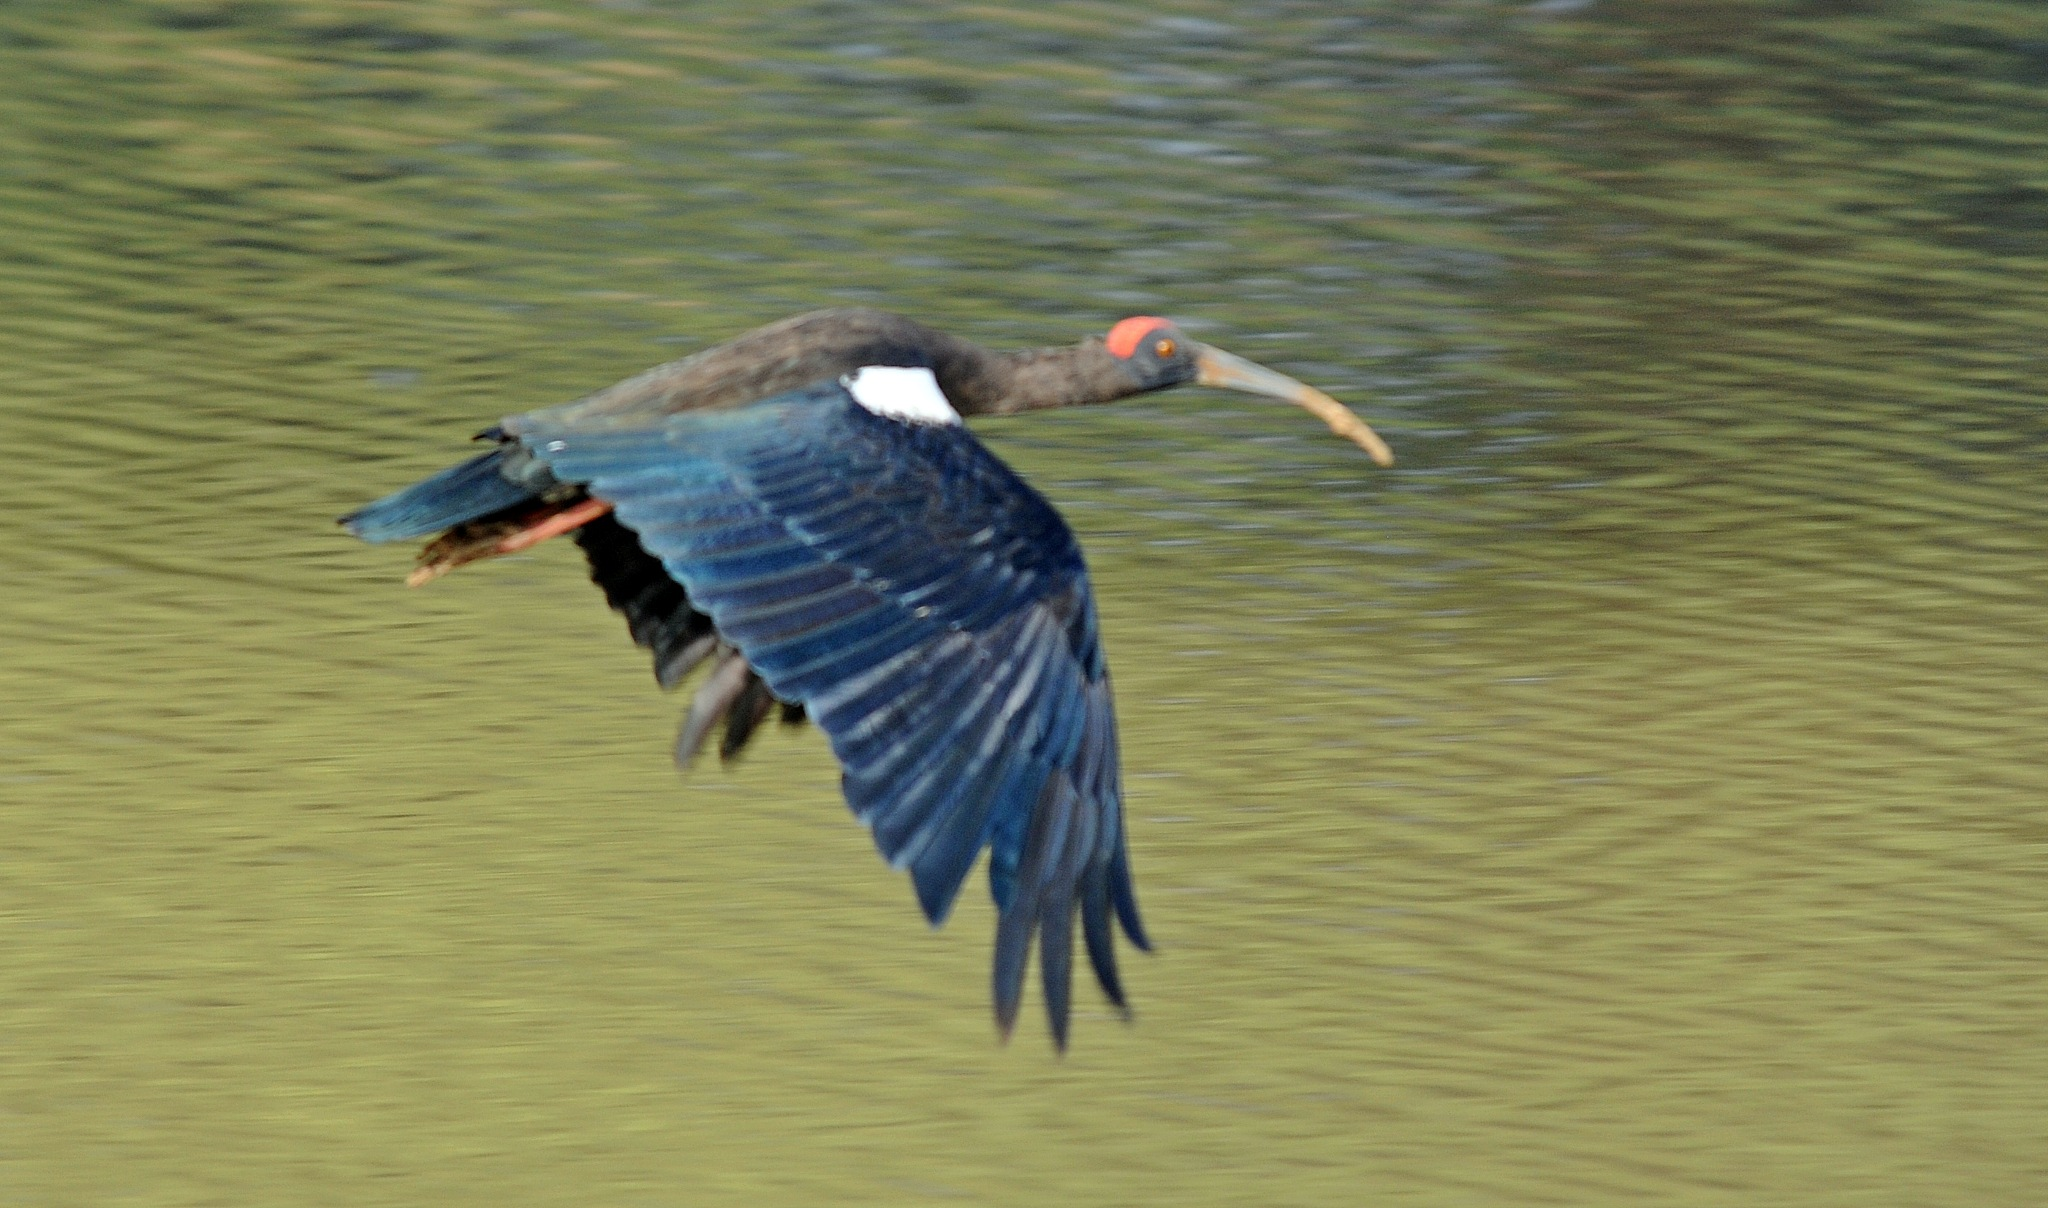 Red naped Ibis in flight by Hemen